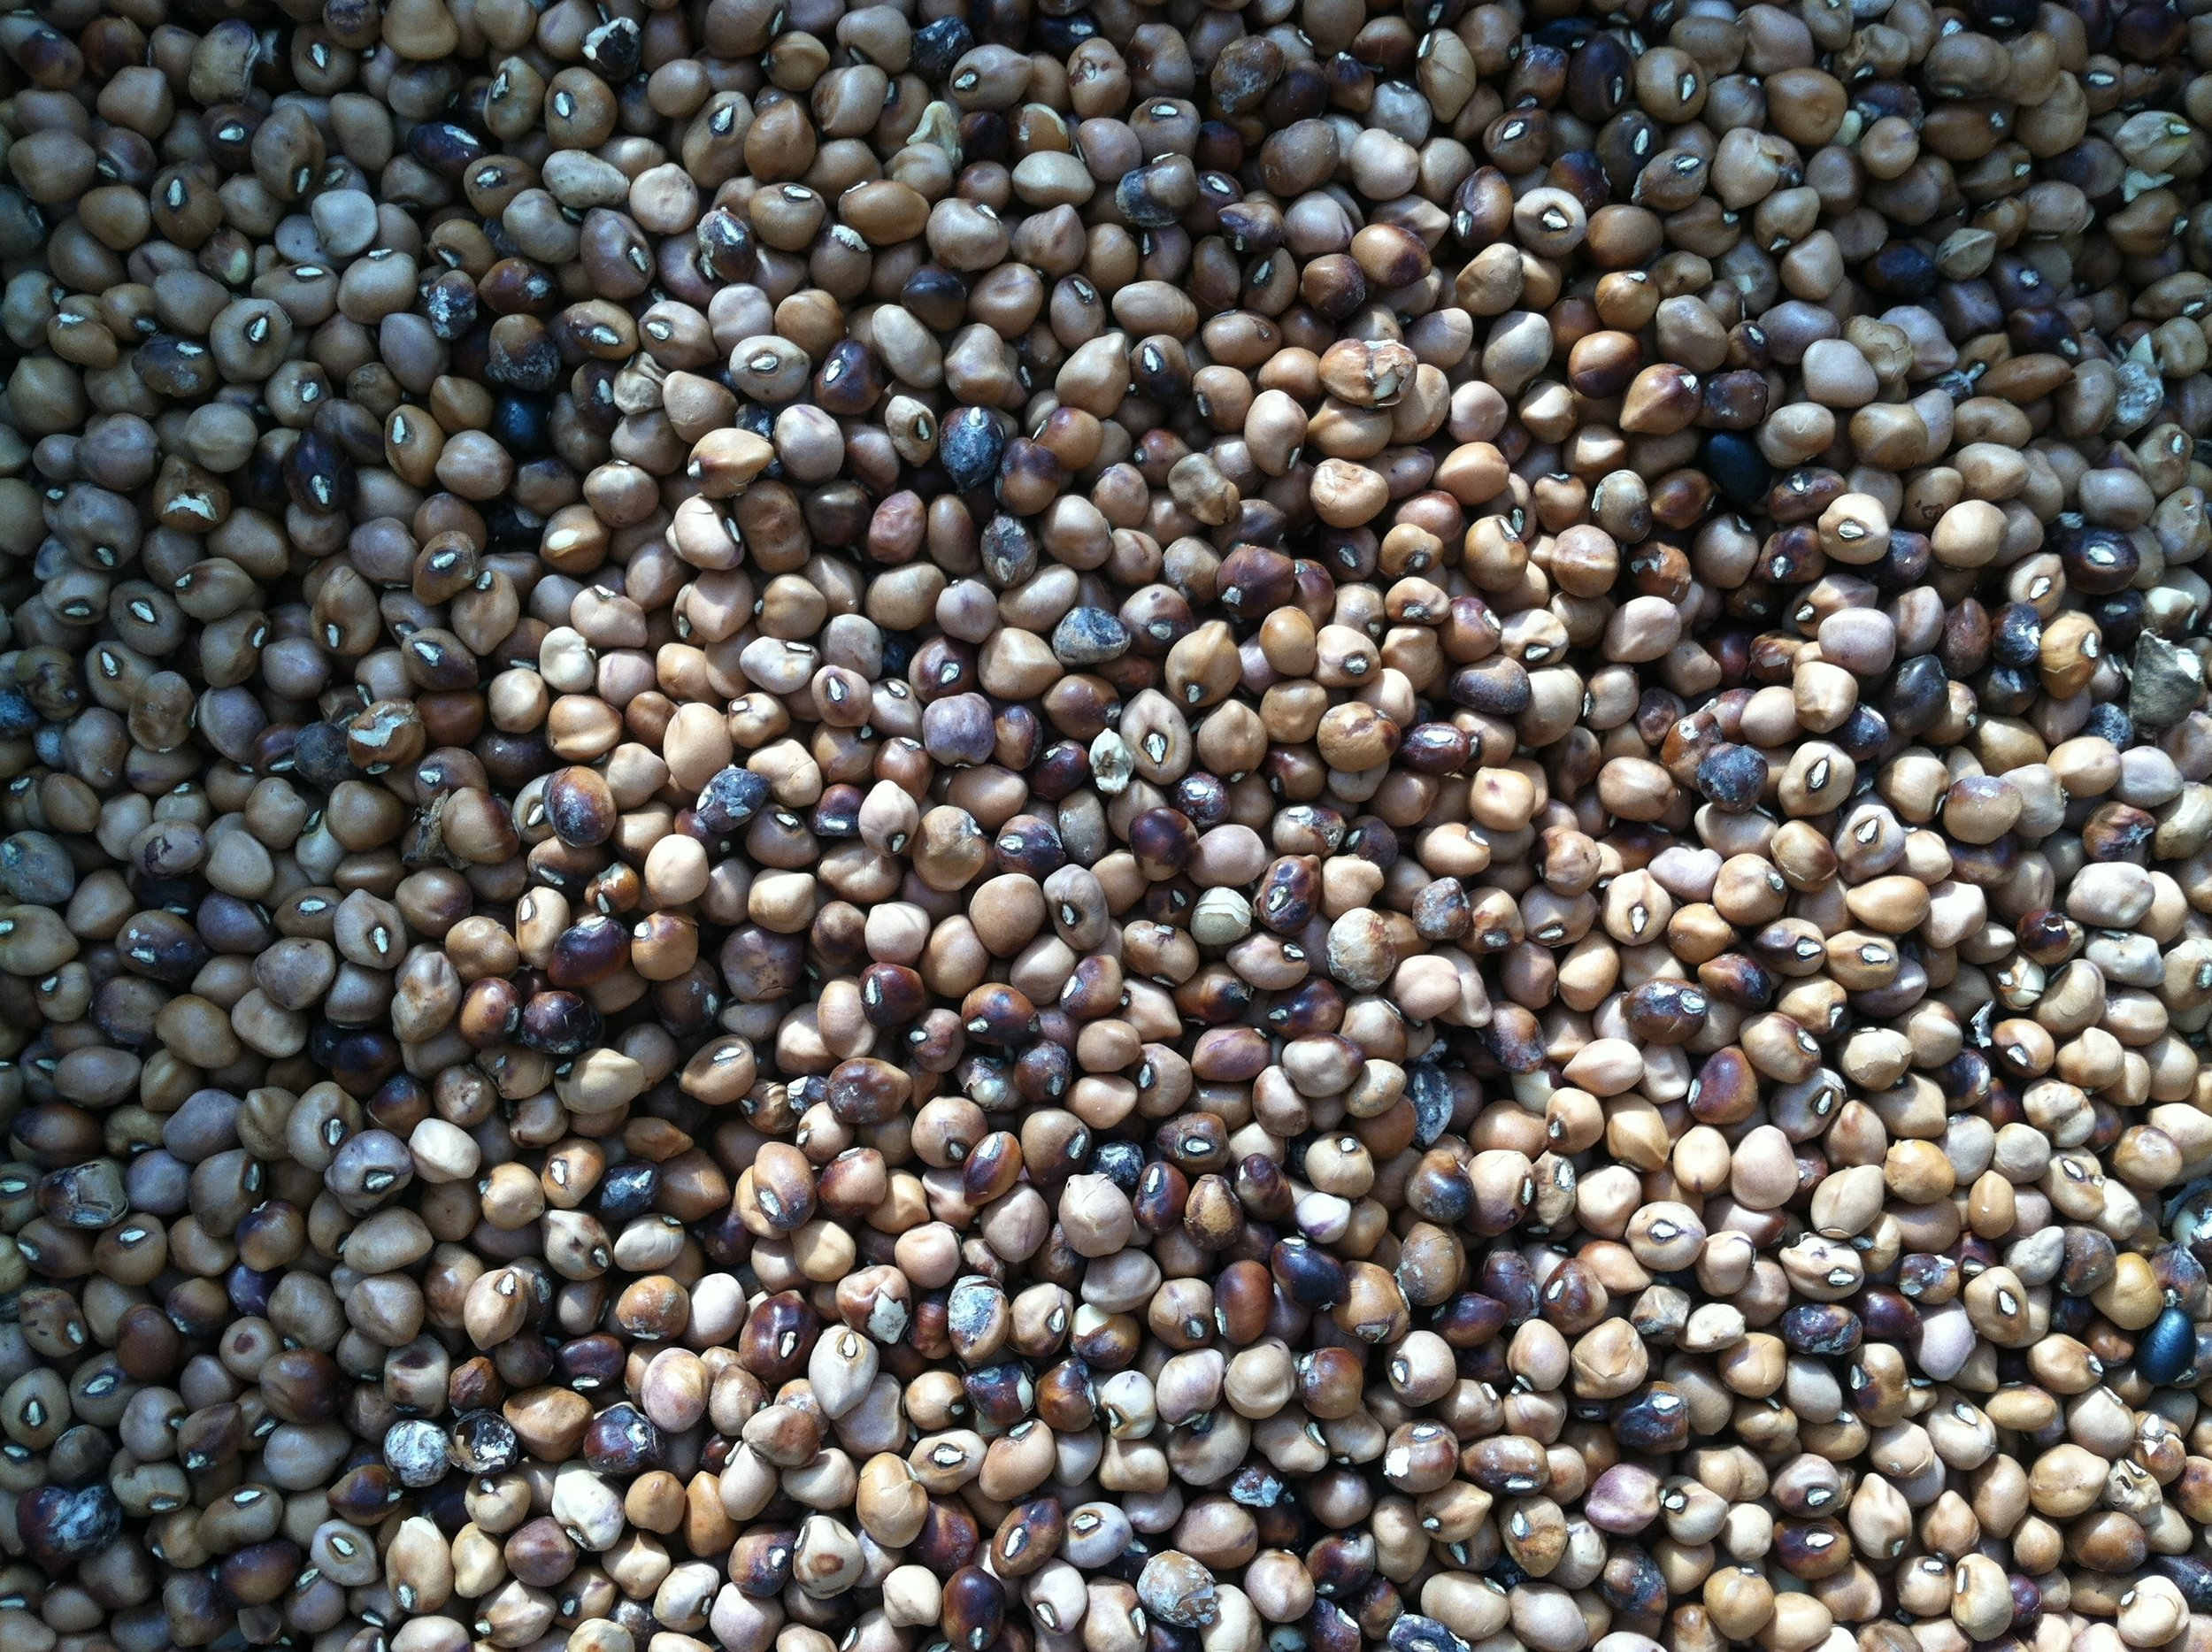 'Carolina Crowder' dry beans, threshed and mostly winnowed. The 'Midnight Black Turtle' are also done. Four more to go.